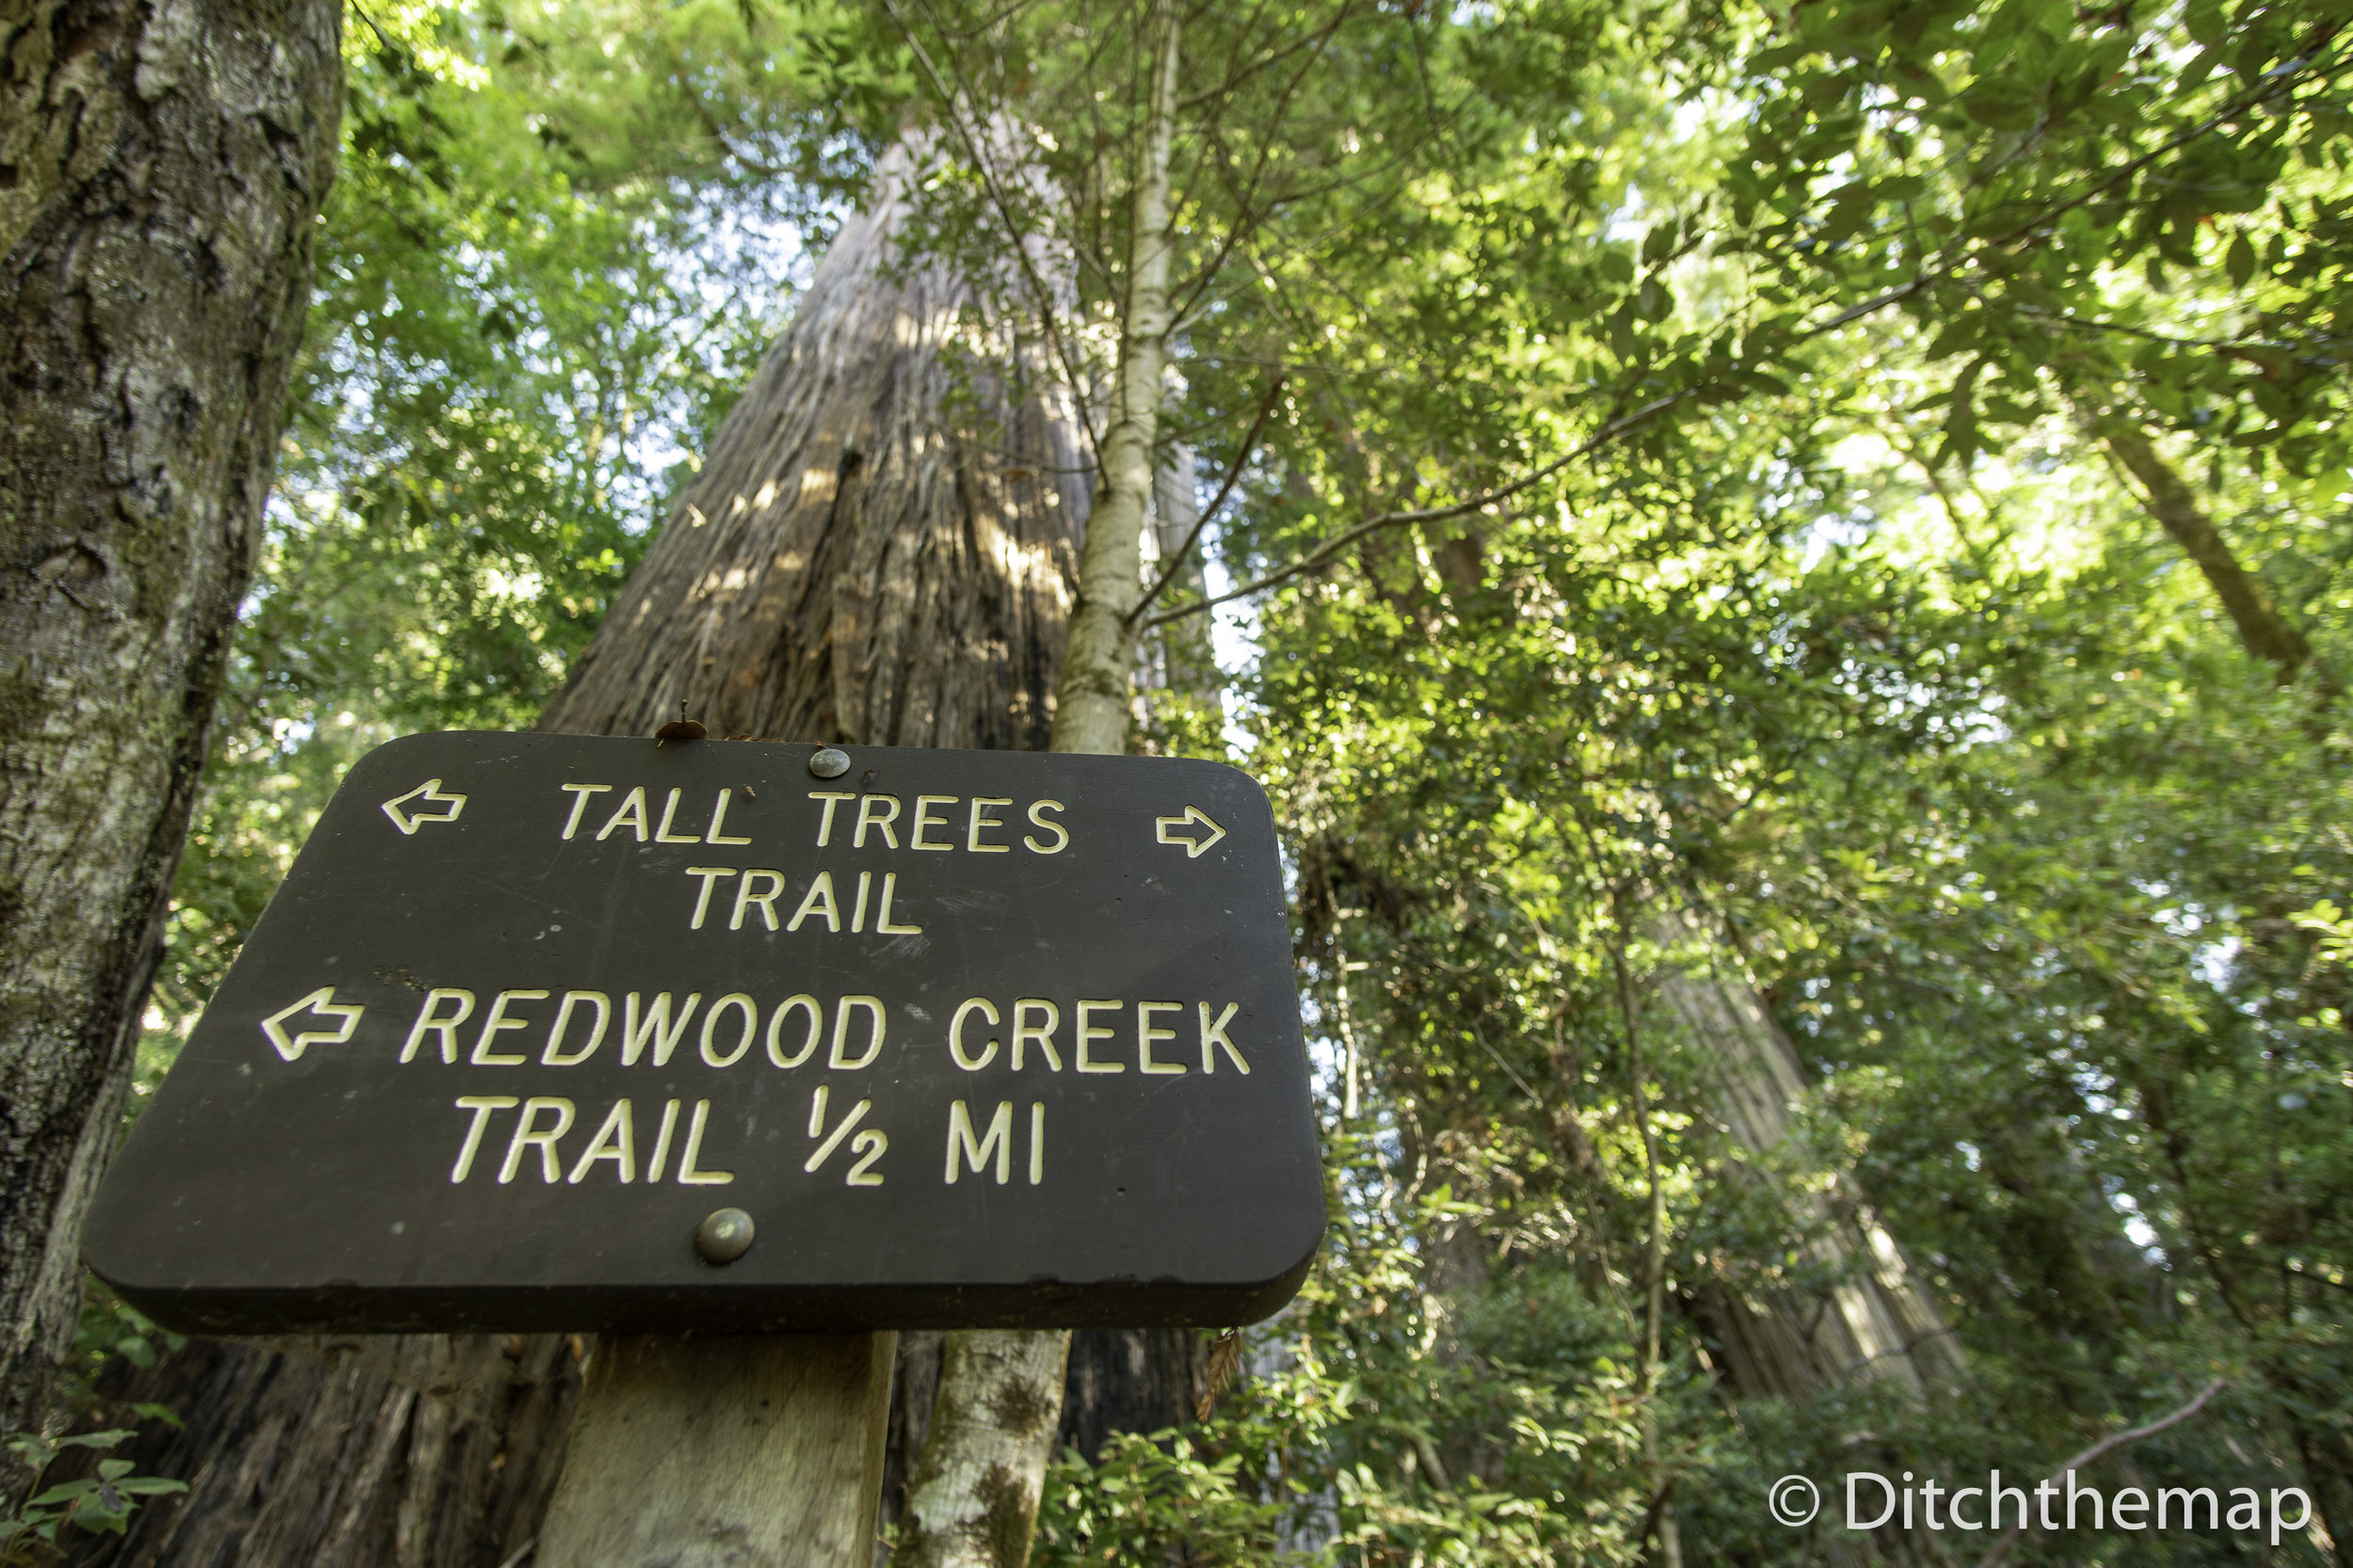 Trail Sign Post - along the Tall Tree Trail